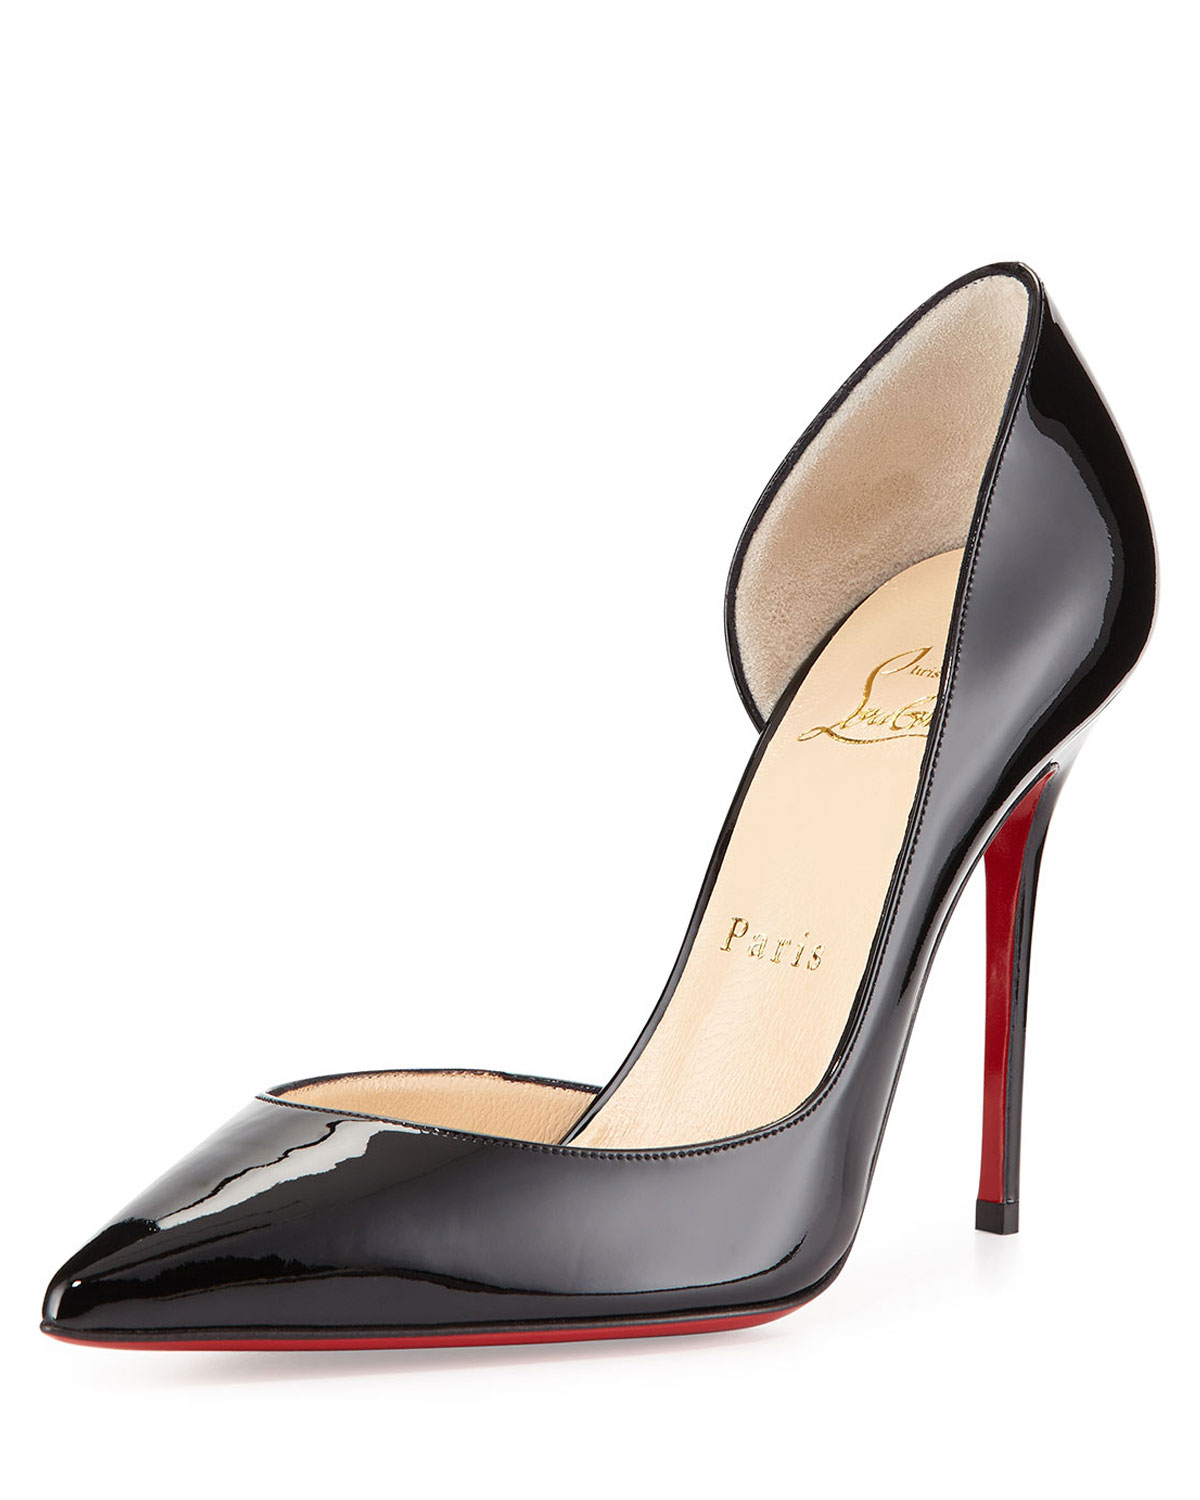 4dbbc198c935 Christian Louboutin Iriza Patent Half-d Orsay 100mm Red Sole Pump ...